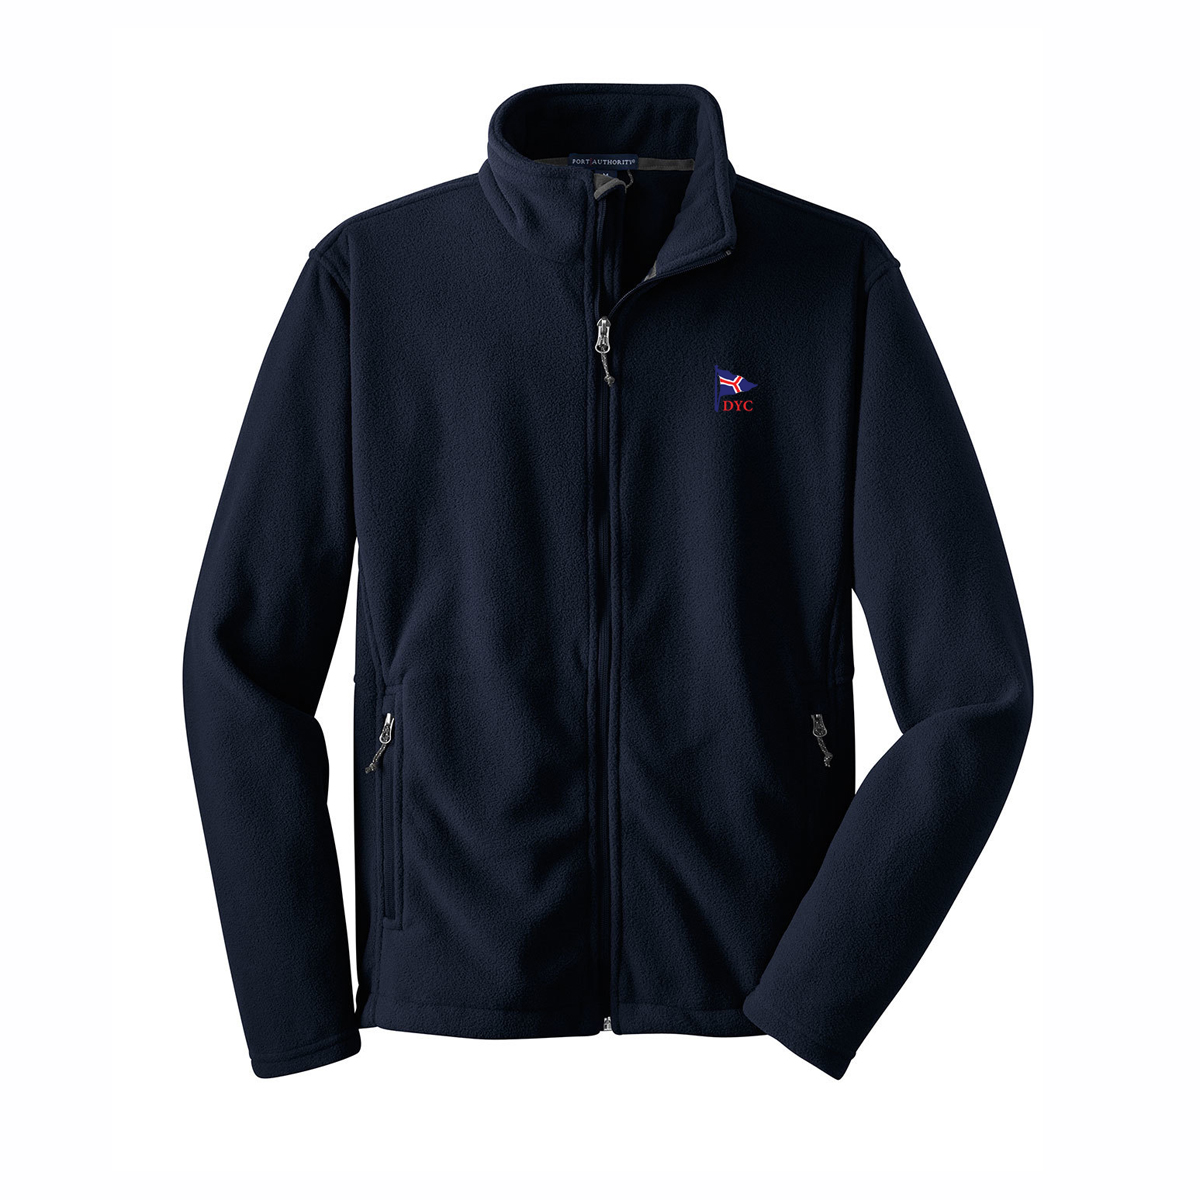 Devon Yacht Club - Men's Value Fleece Jacket